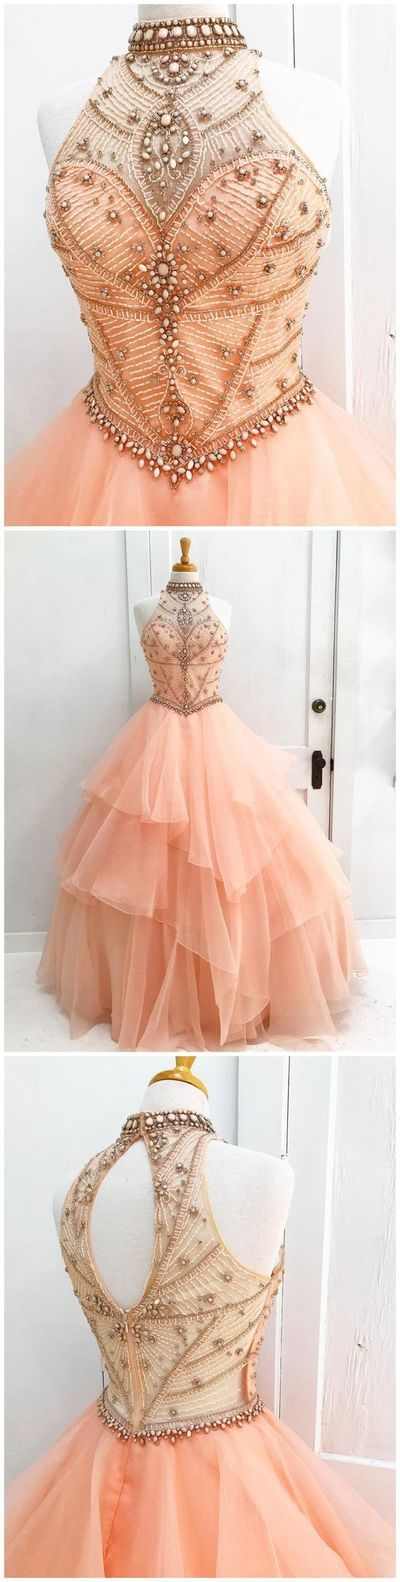 CHIC A-LINE HIGH NECK PEARL PINK BEADING MODEST LONG PROM DRESS EVENING DRESS ,030 from DressyBridal